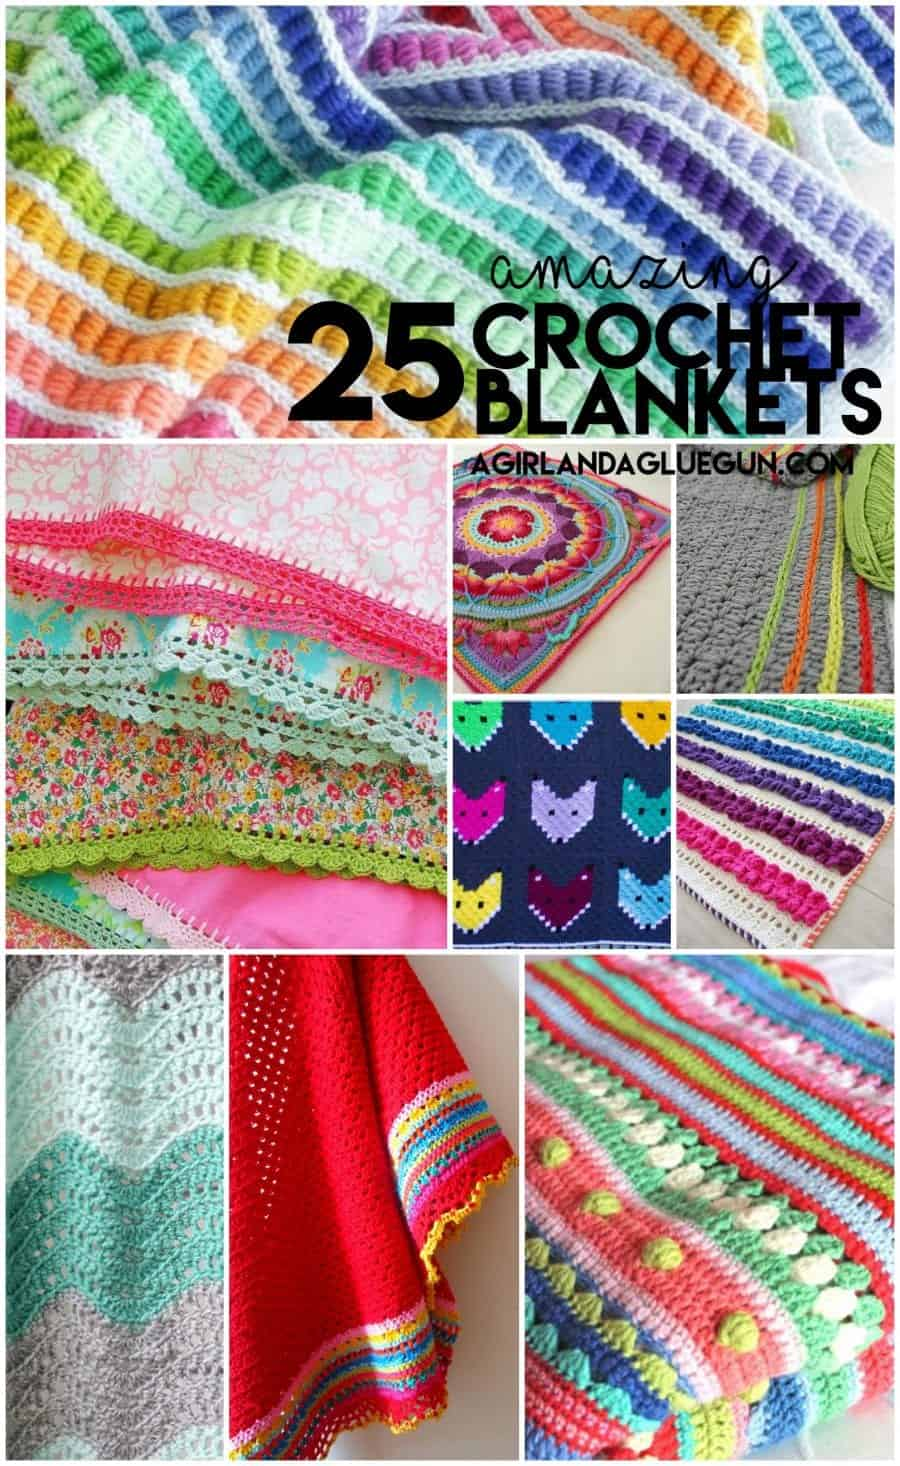 25 amazing crocheted blanket ideas so pretty!